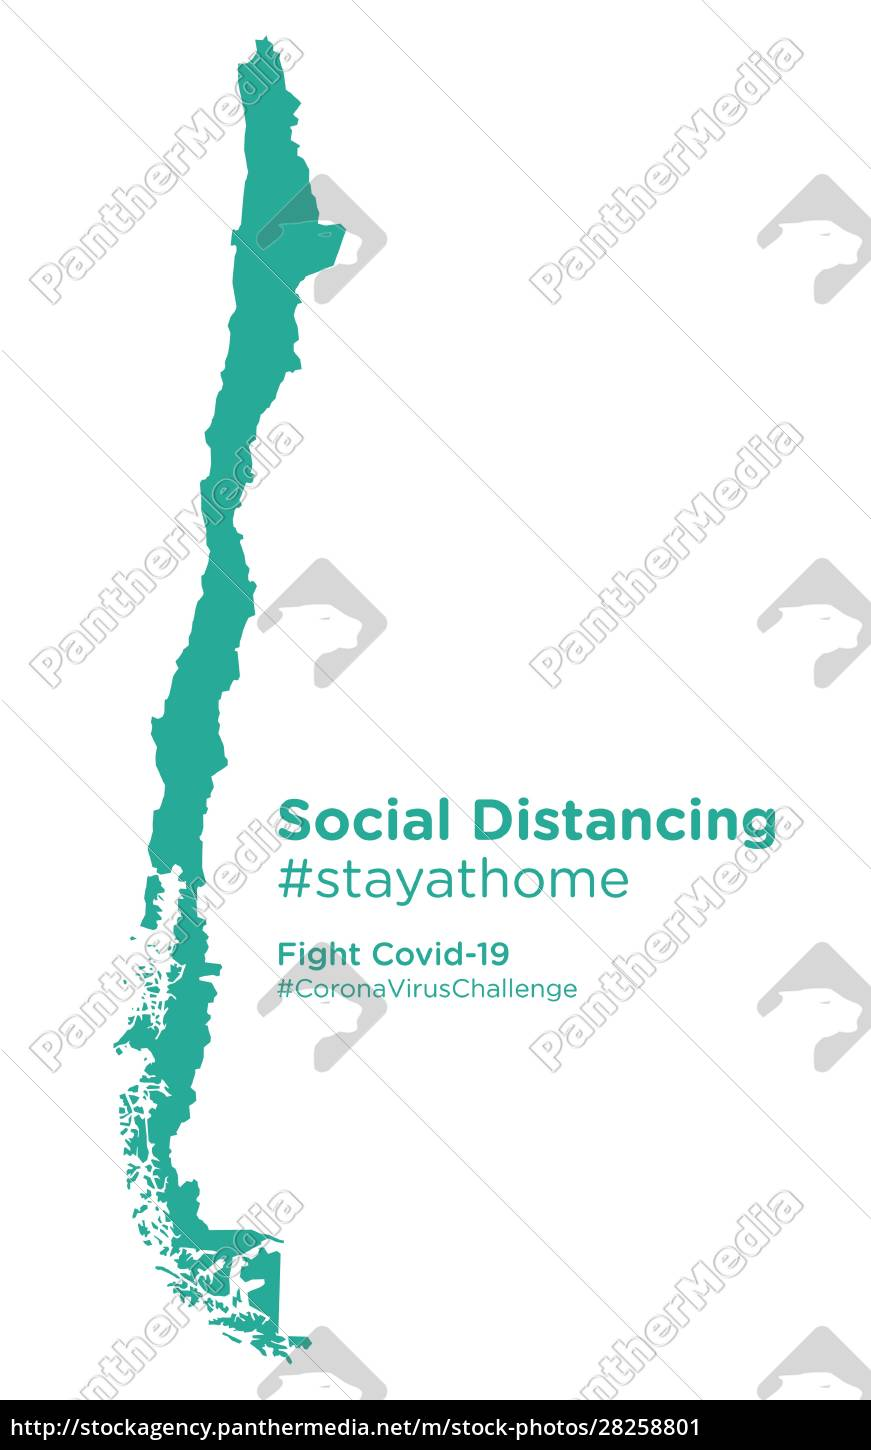 chile, map, with, social, distancing, #stayathome - 28258801